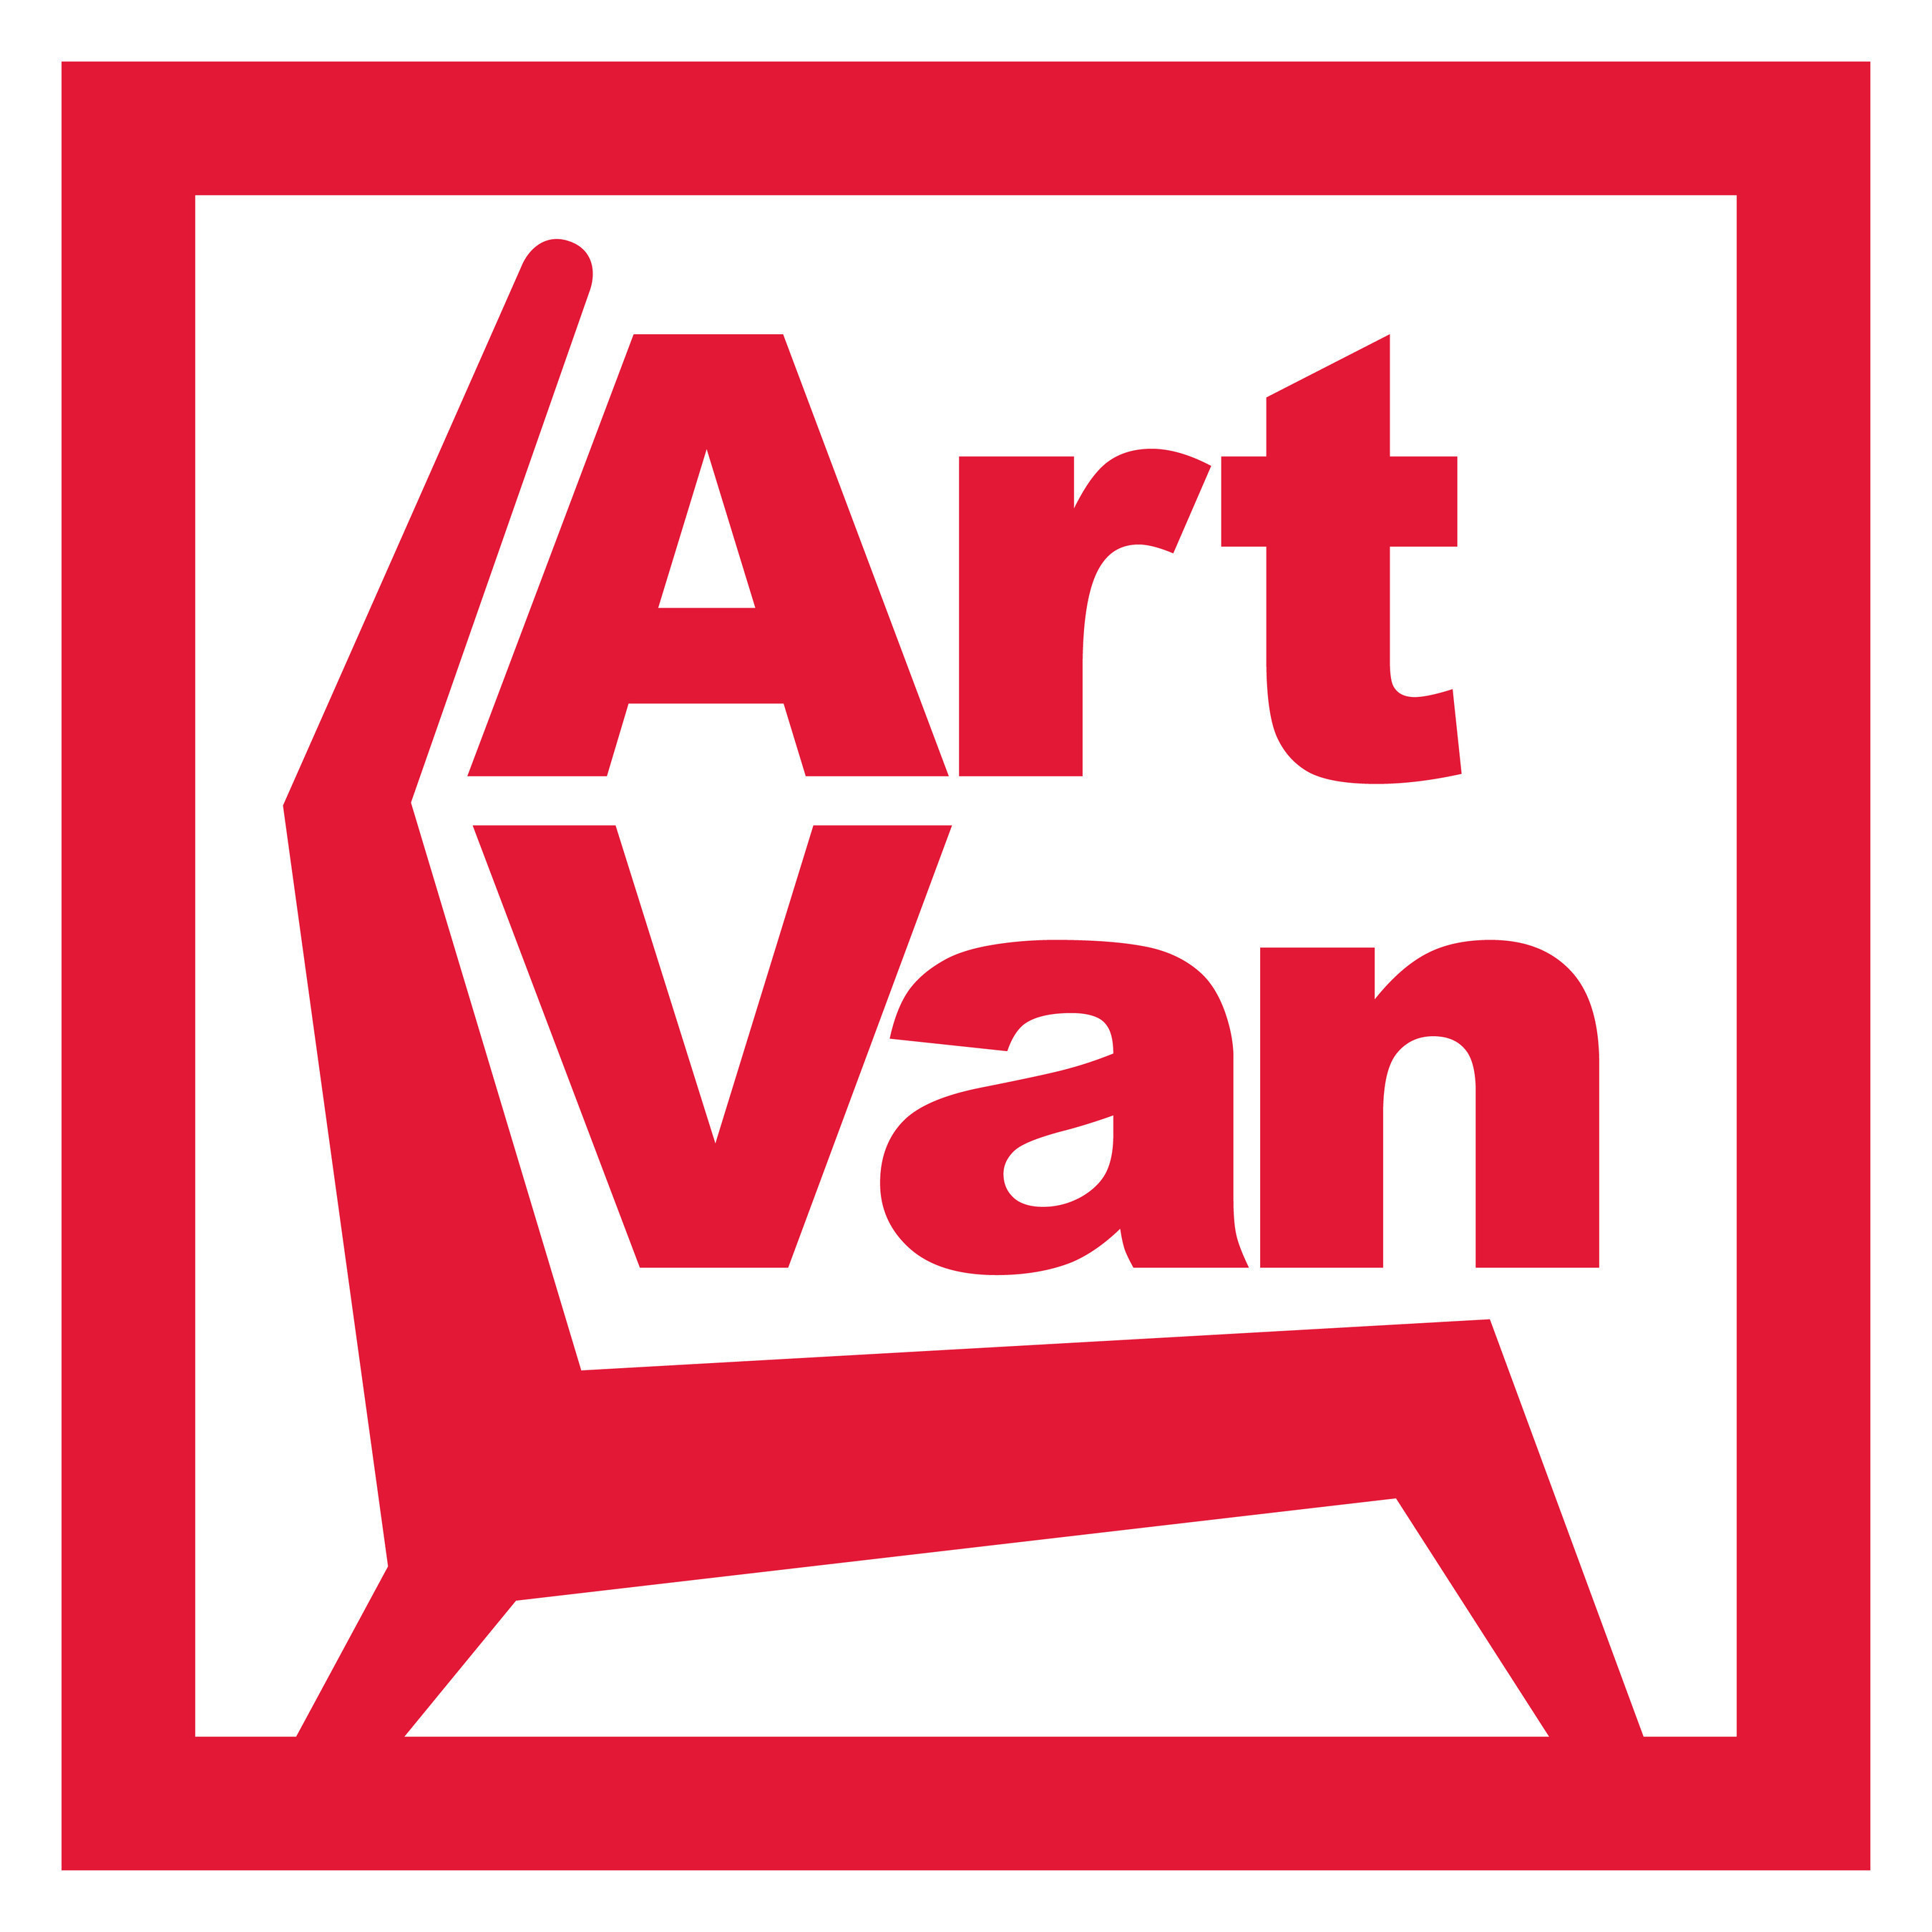 Art Van Furniture Names David Ladd As Vice President Chief Financial Officer